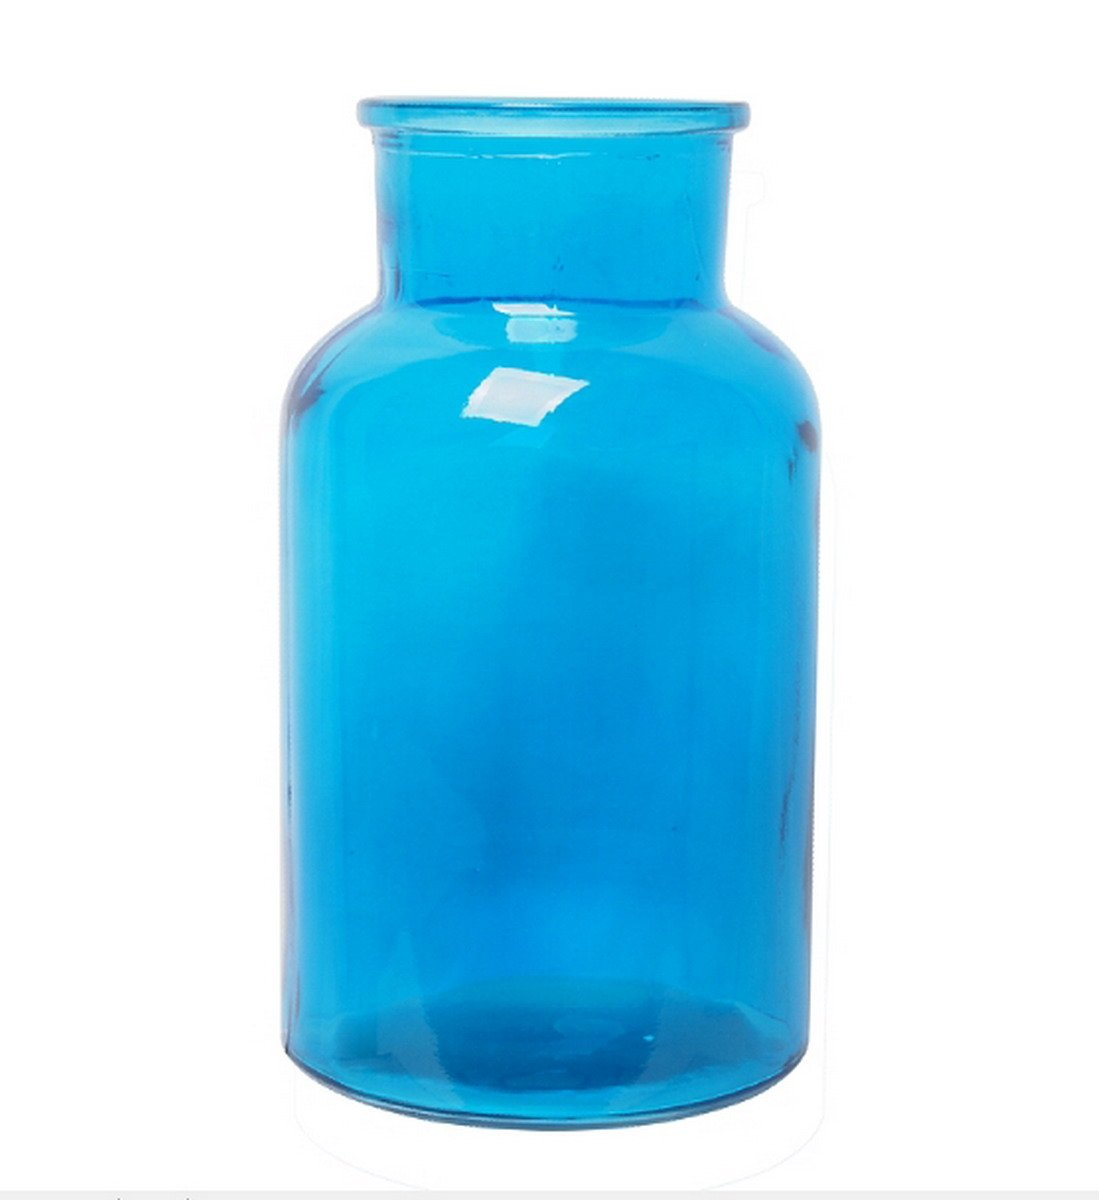 Hosley Blue Glass Vases - 10'' High. Ideal Gift for Special Occasion; for Spa, Nautical, Family Room, Restaurant, Storage, Votive Candle Gardens. O9